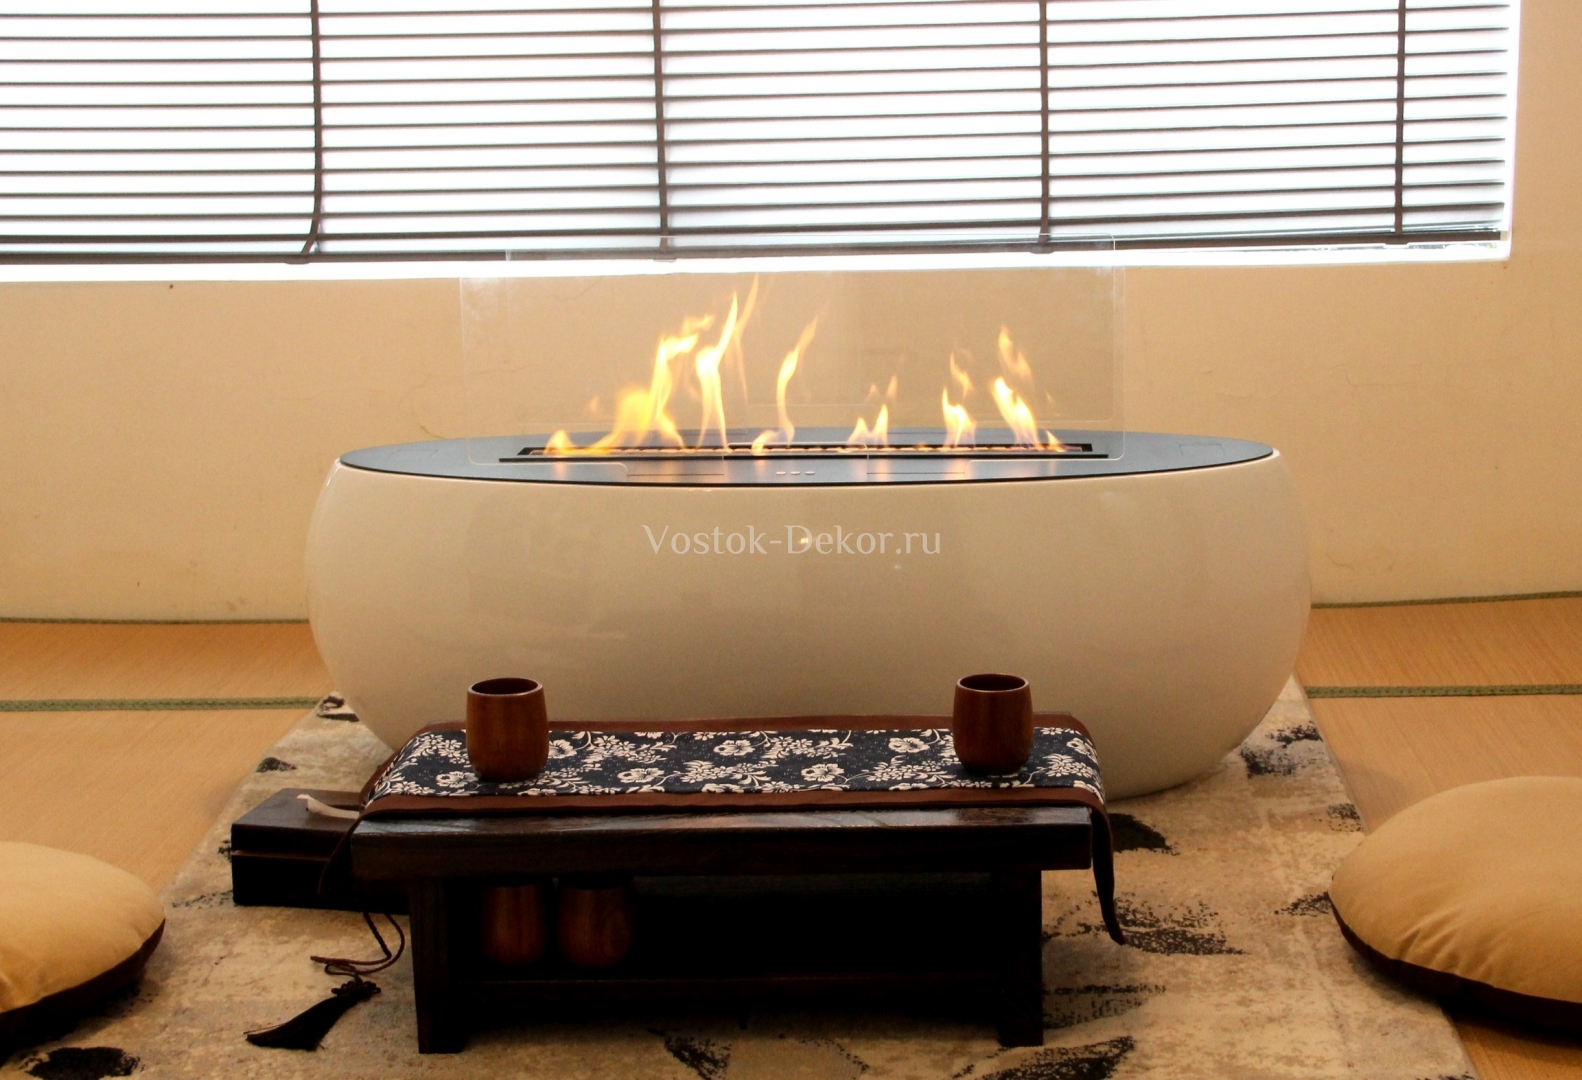 Fire orb Fireplace Awesome БИОКАМИН АВТОМАТИЧЕСКИЙ Airtone – orb ДРина 110 см — Vostok